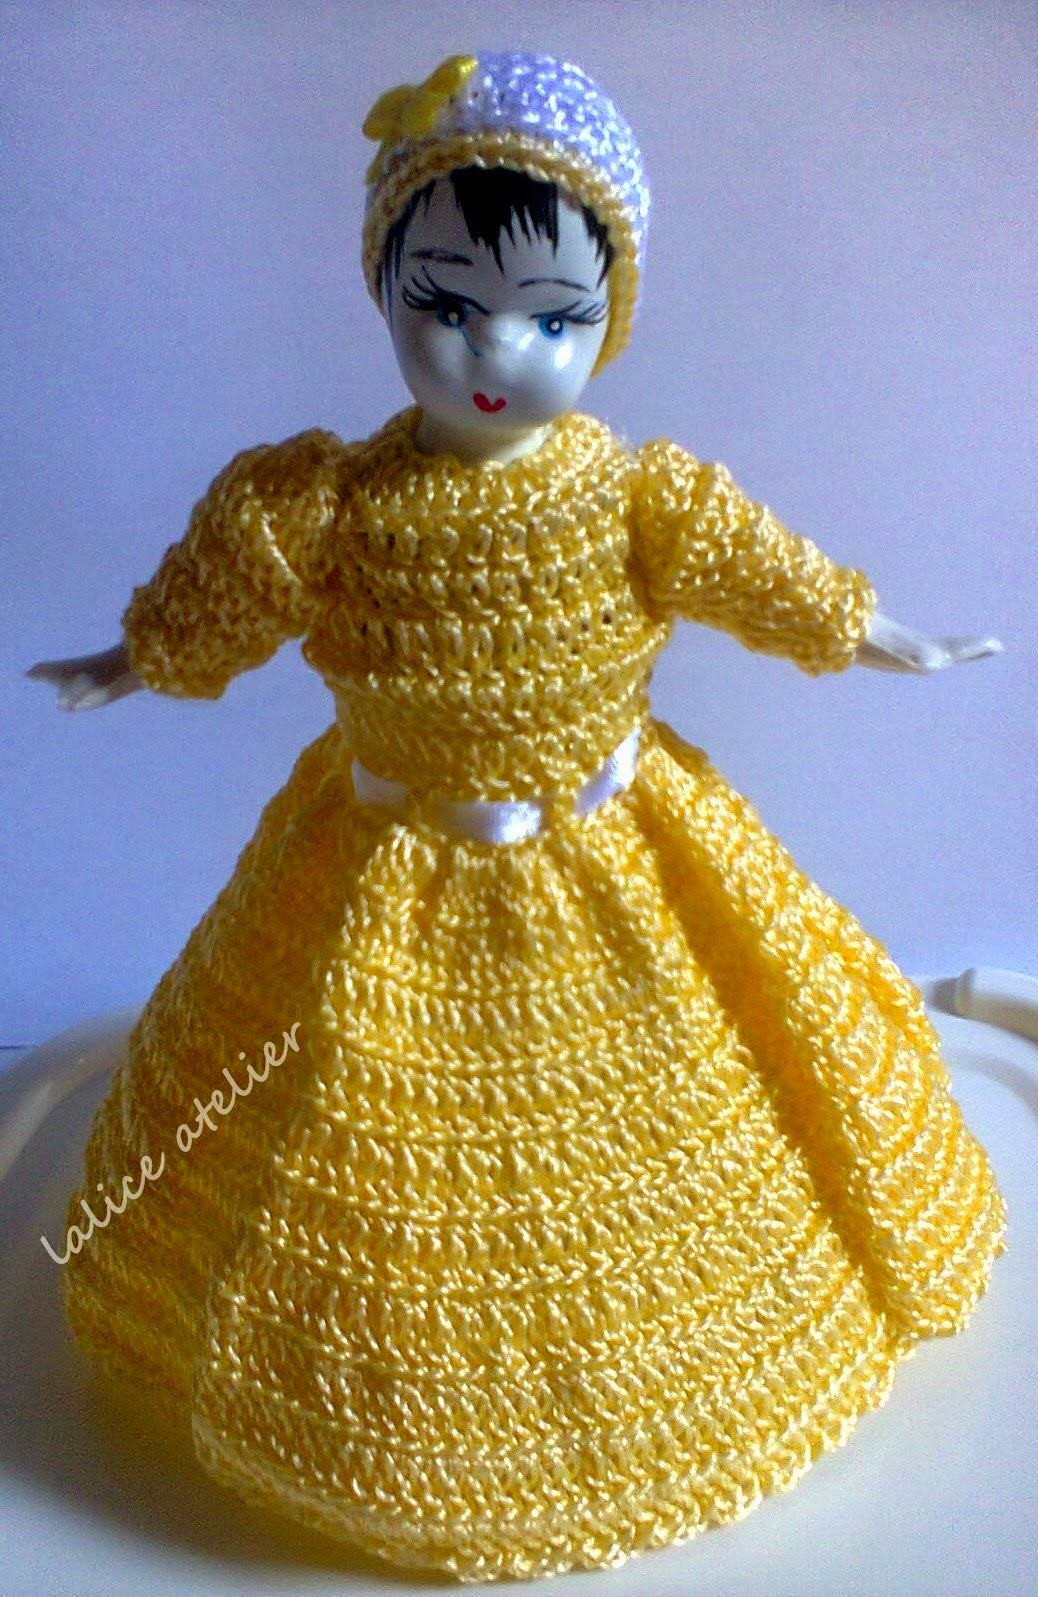 boneca crochê, boneca garrafa pet, muñeca botella, crochet doll,pet bottle doll,muñeca ganchillo,